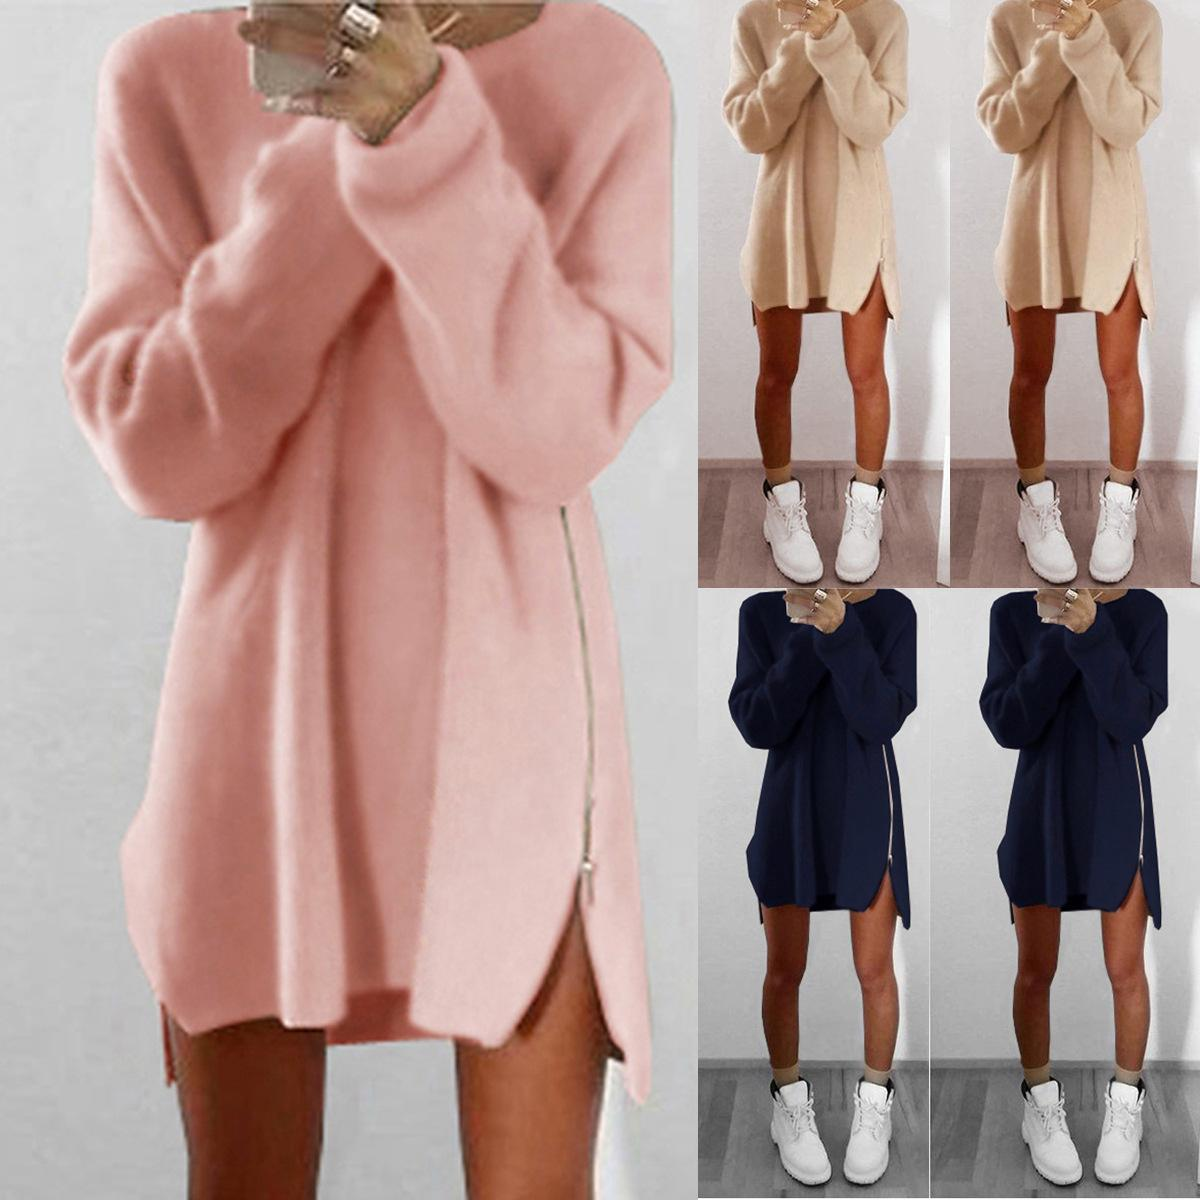 e080fb881e4 2019 Sexy Womens Ladies Winter Long Sleeve Jumper Tops Fashion Girls  Knitted Oversized Baggy Sweater Casual Loose Tunic Jumpers Mini Dress From  Erinzhang